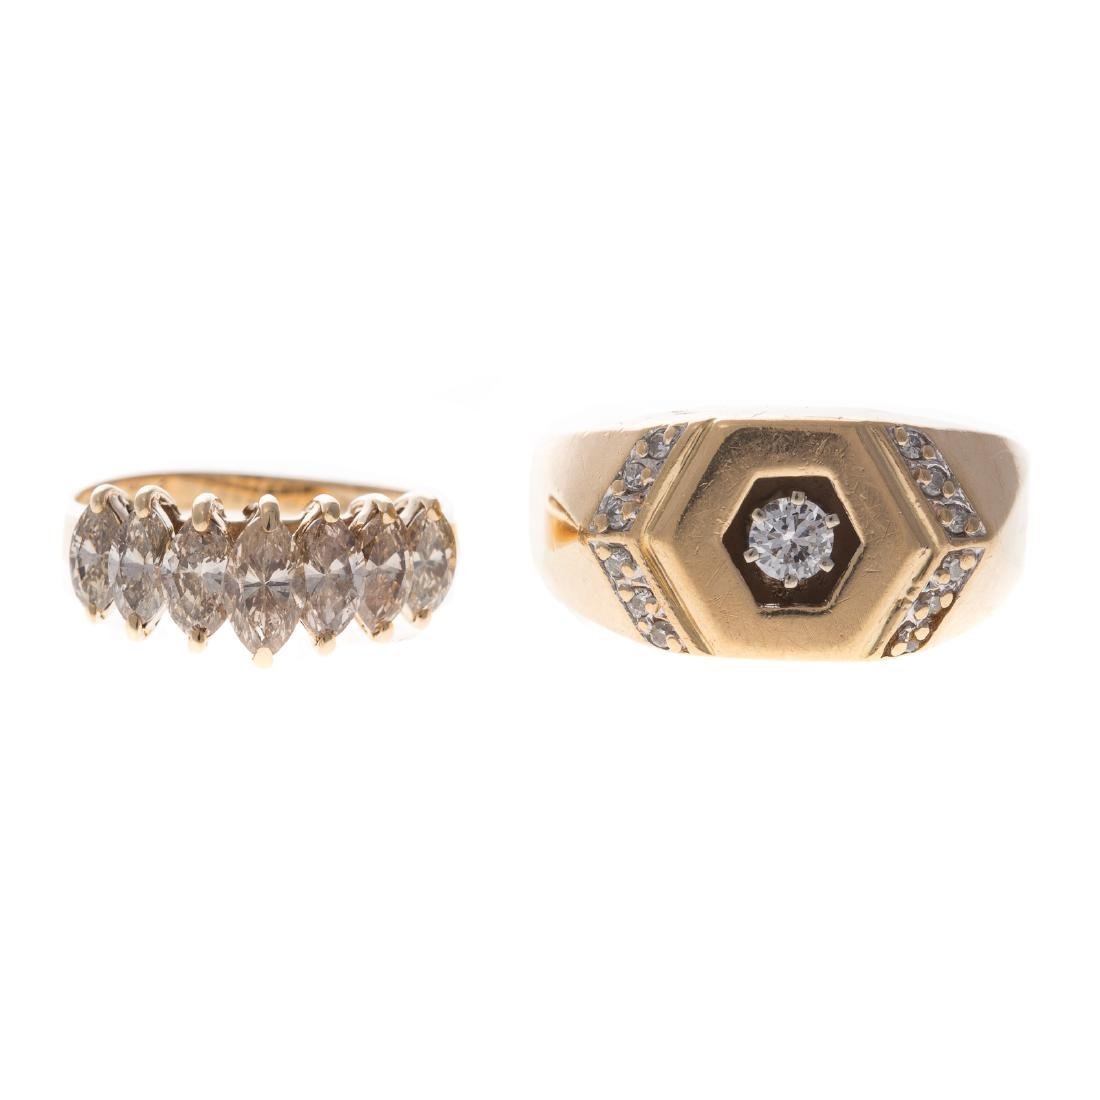 A Pair of Gold Diamond Rings